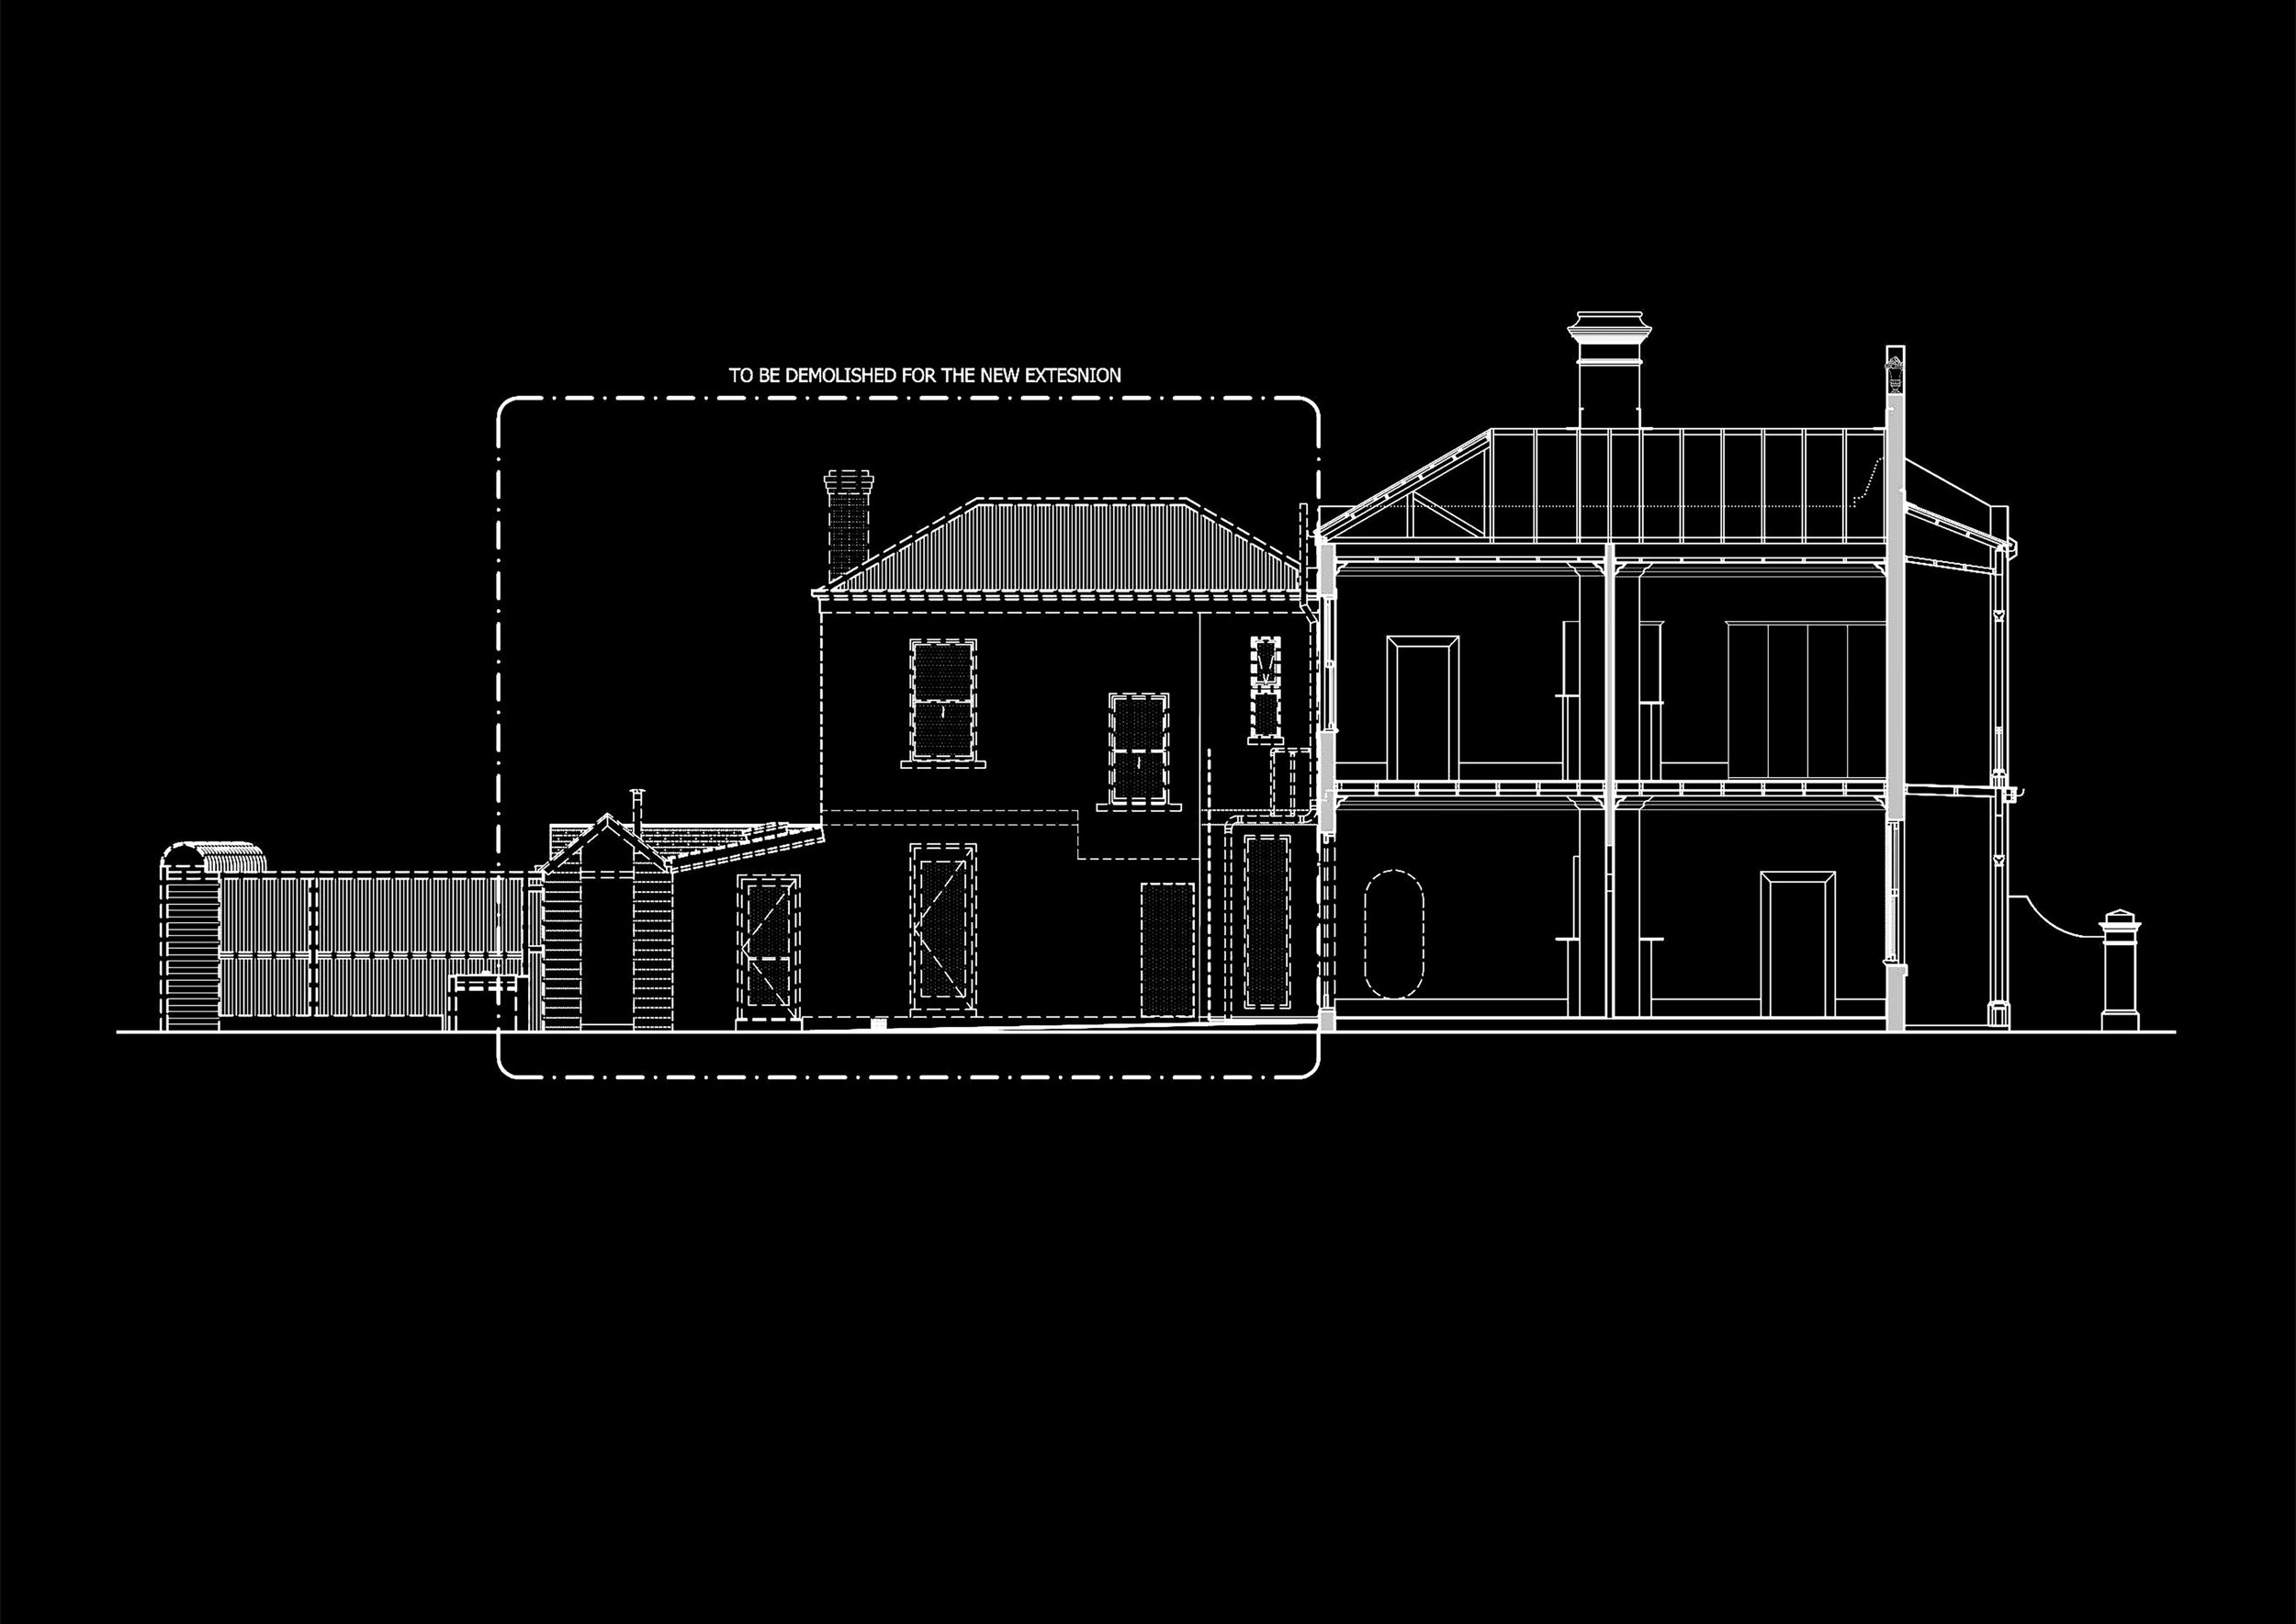 EXISTING SECTION AND PROPOSED DEMOLITION OF ALBERT PARK RESIDENCE IN MELBOURNE